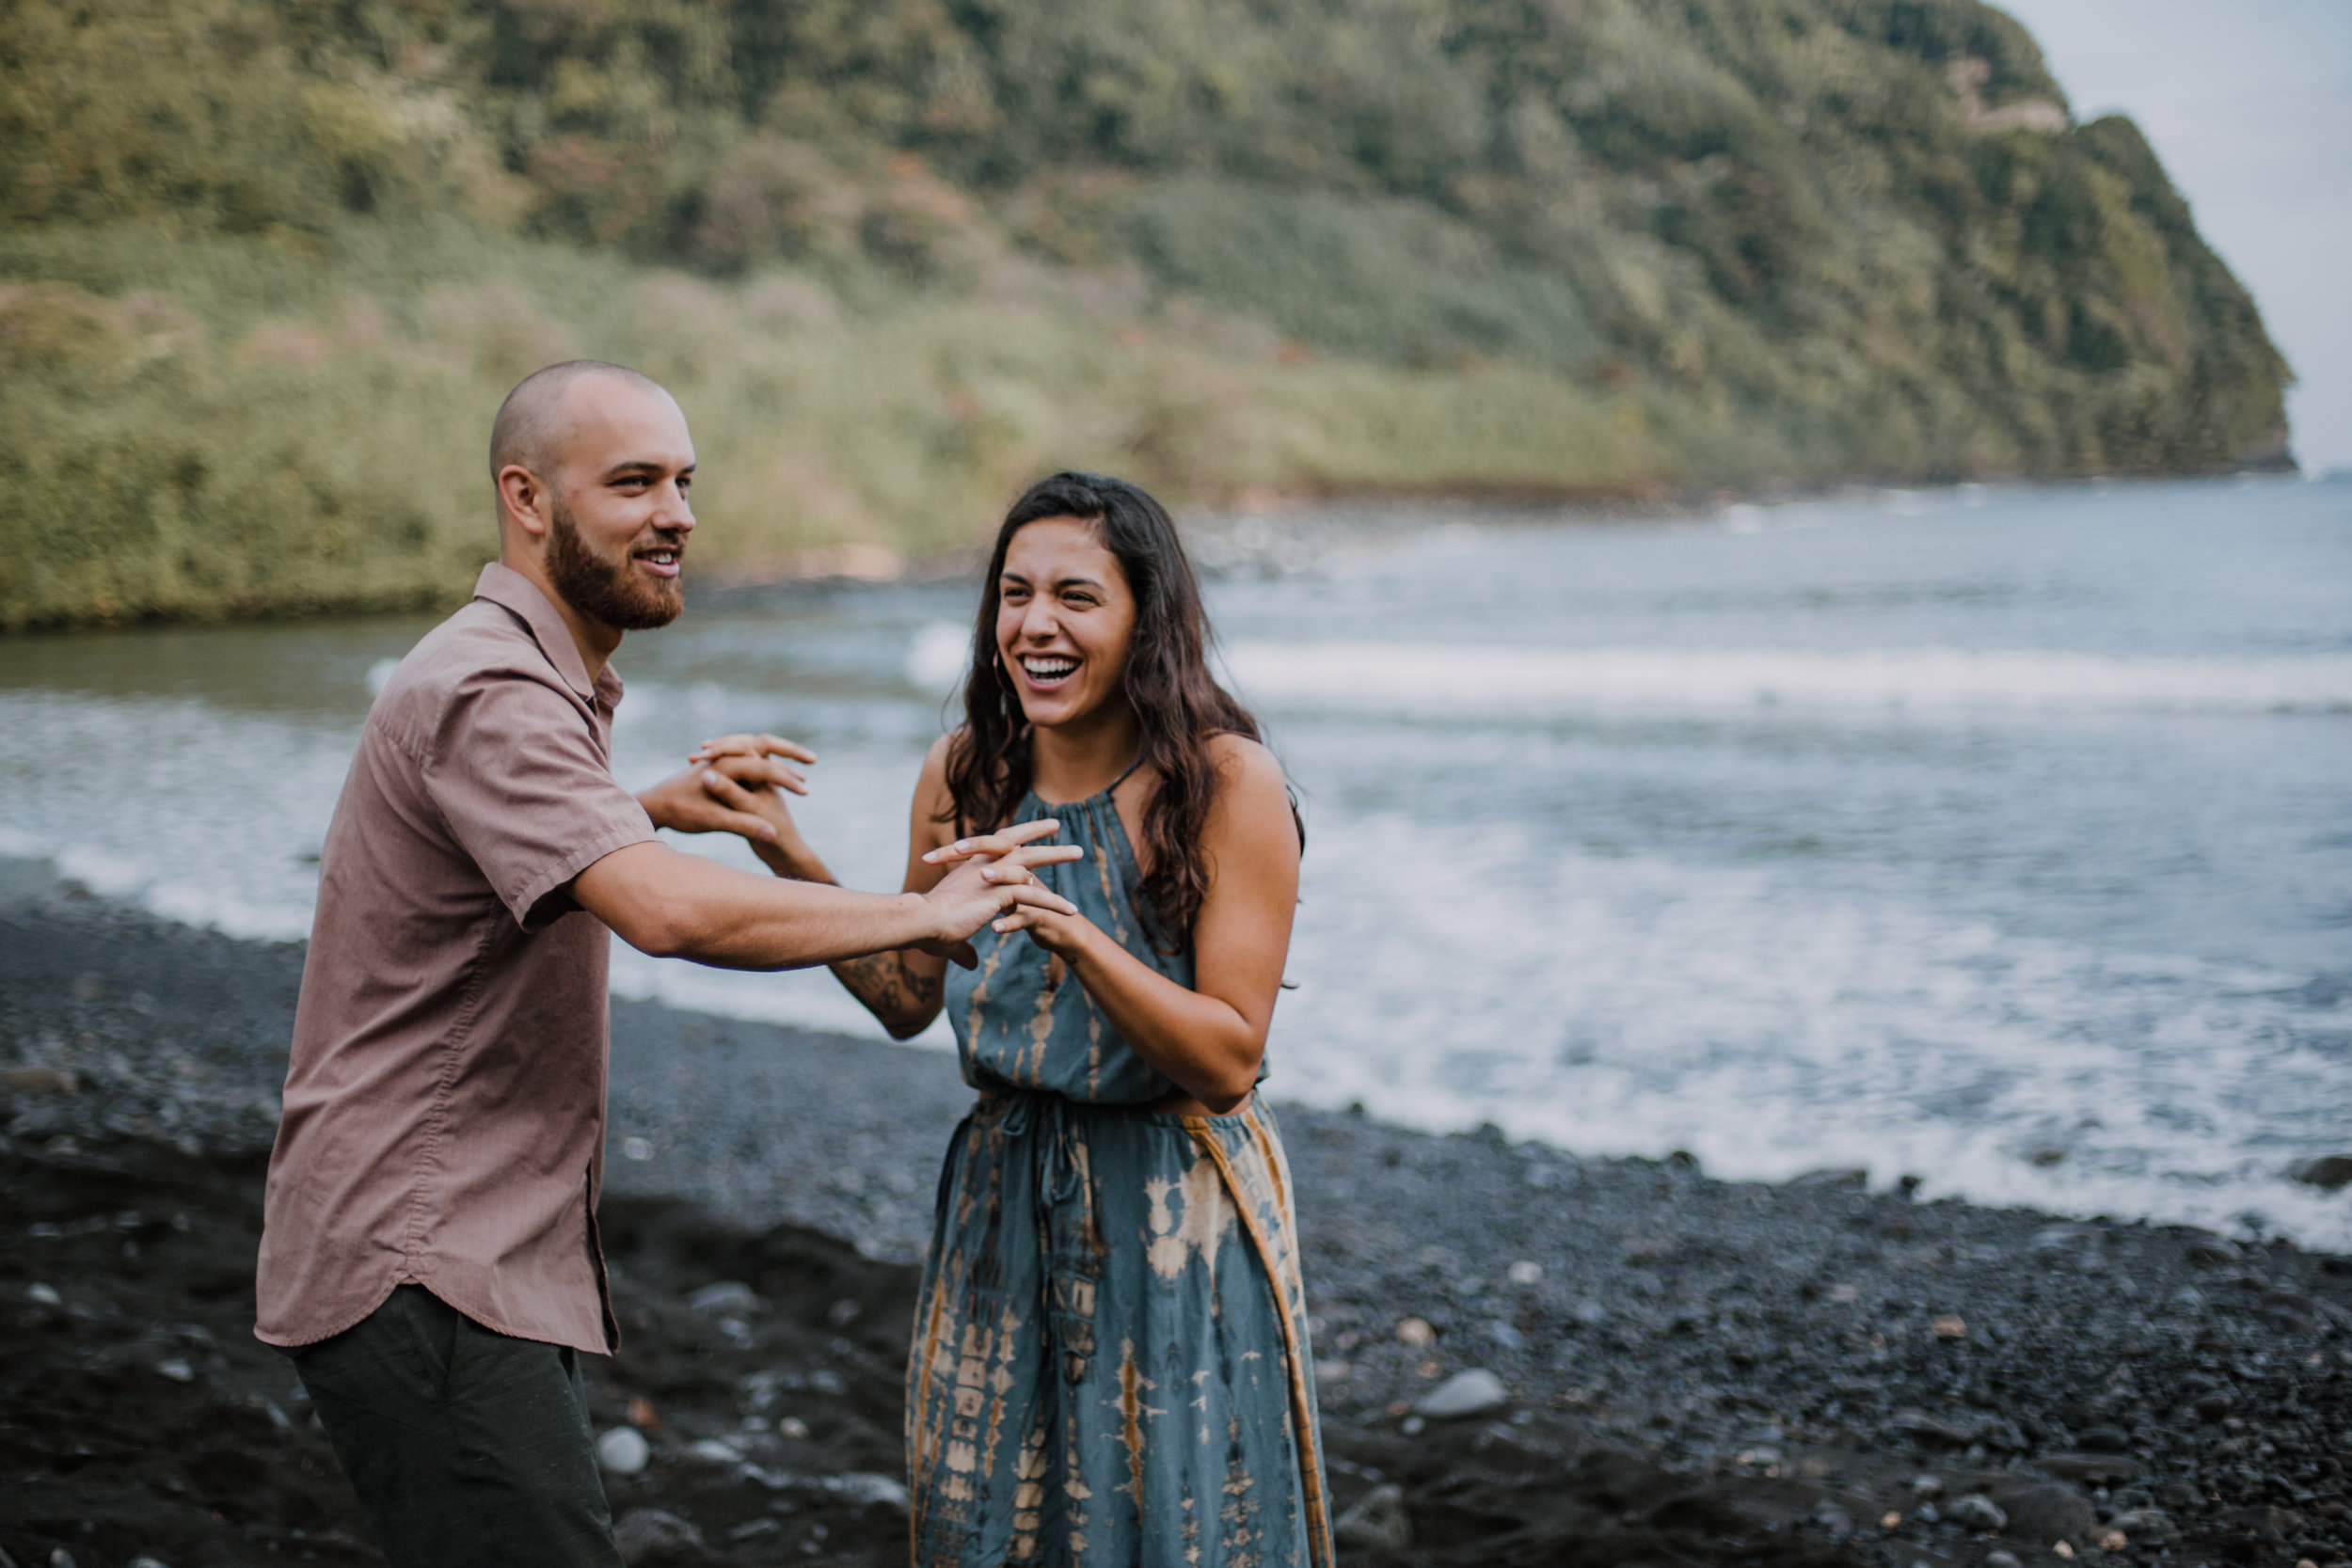 maui black beach couple, island hiking, hawaii waterfall, road to hana, maui waterfall, hawaii wedding photographer, hawaii elopement photographer, maui wedding, maui engagements, maui elopement